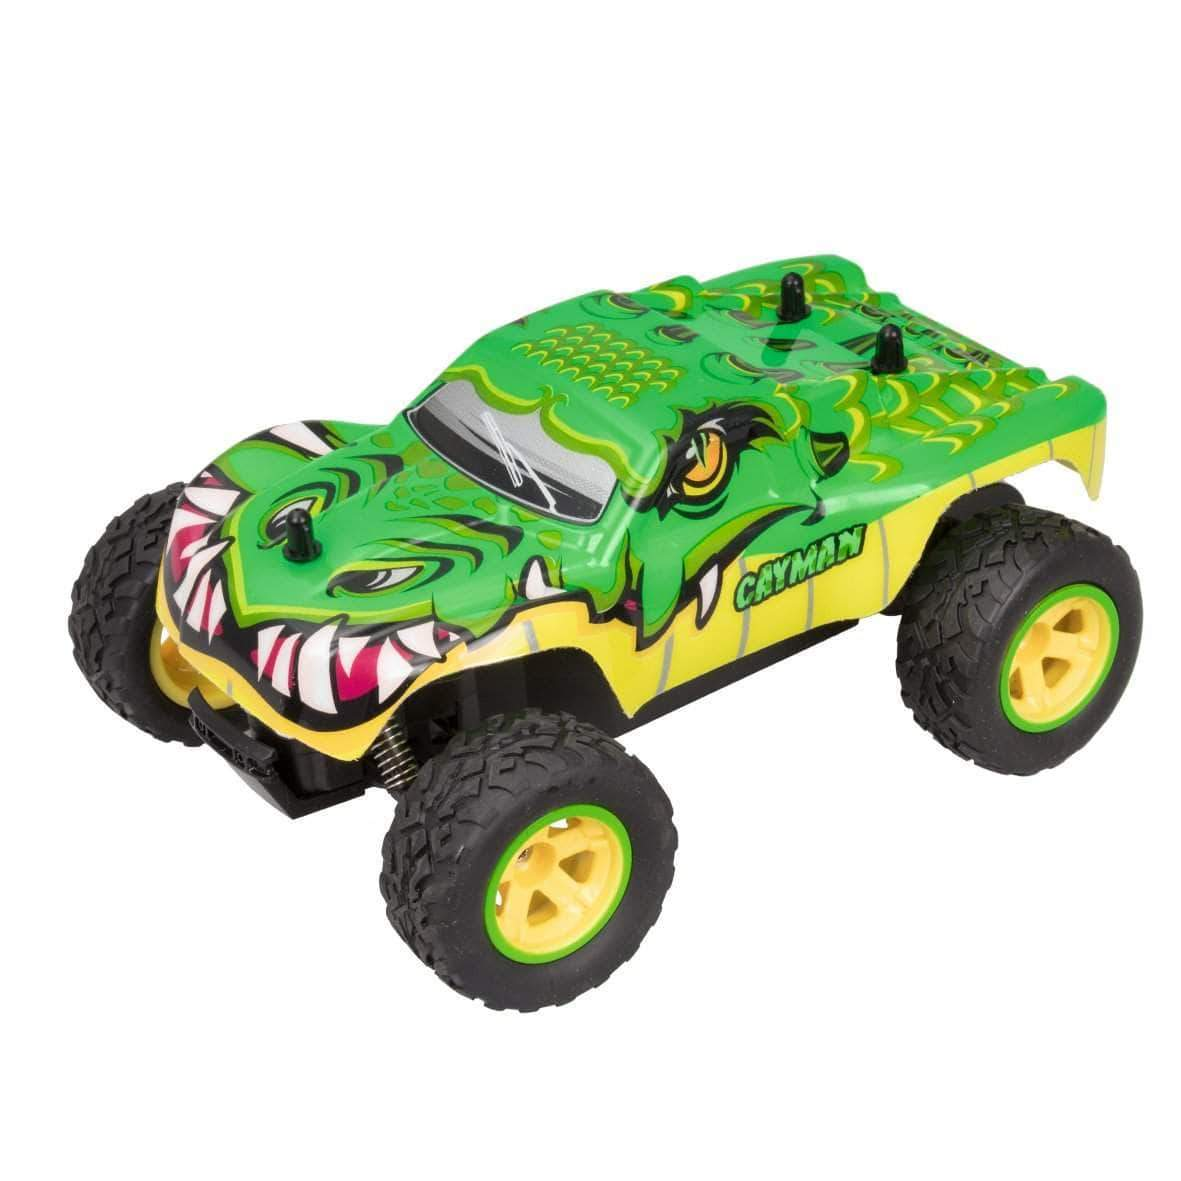 Amazon Xtrem Raiders Cayman, Todoterreno 4x4, teledirigidos para niños, Coches RC, radiocontrol (World Brands XT180767)